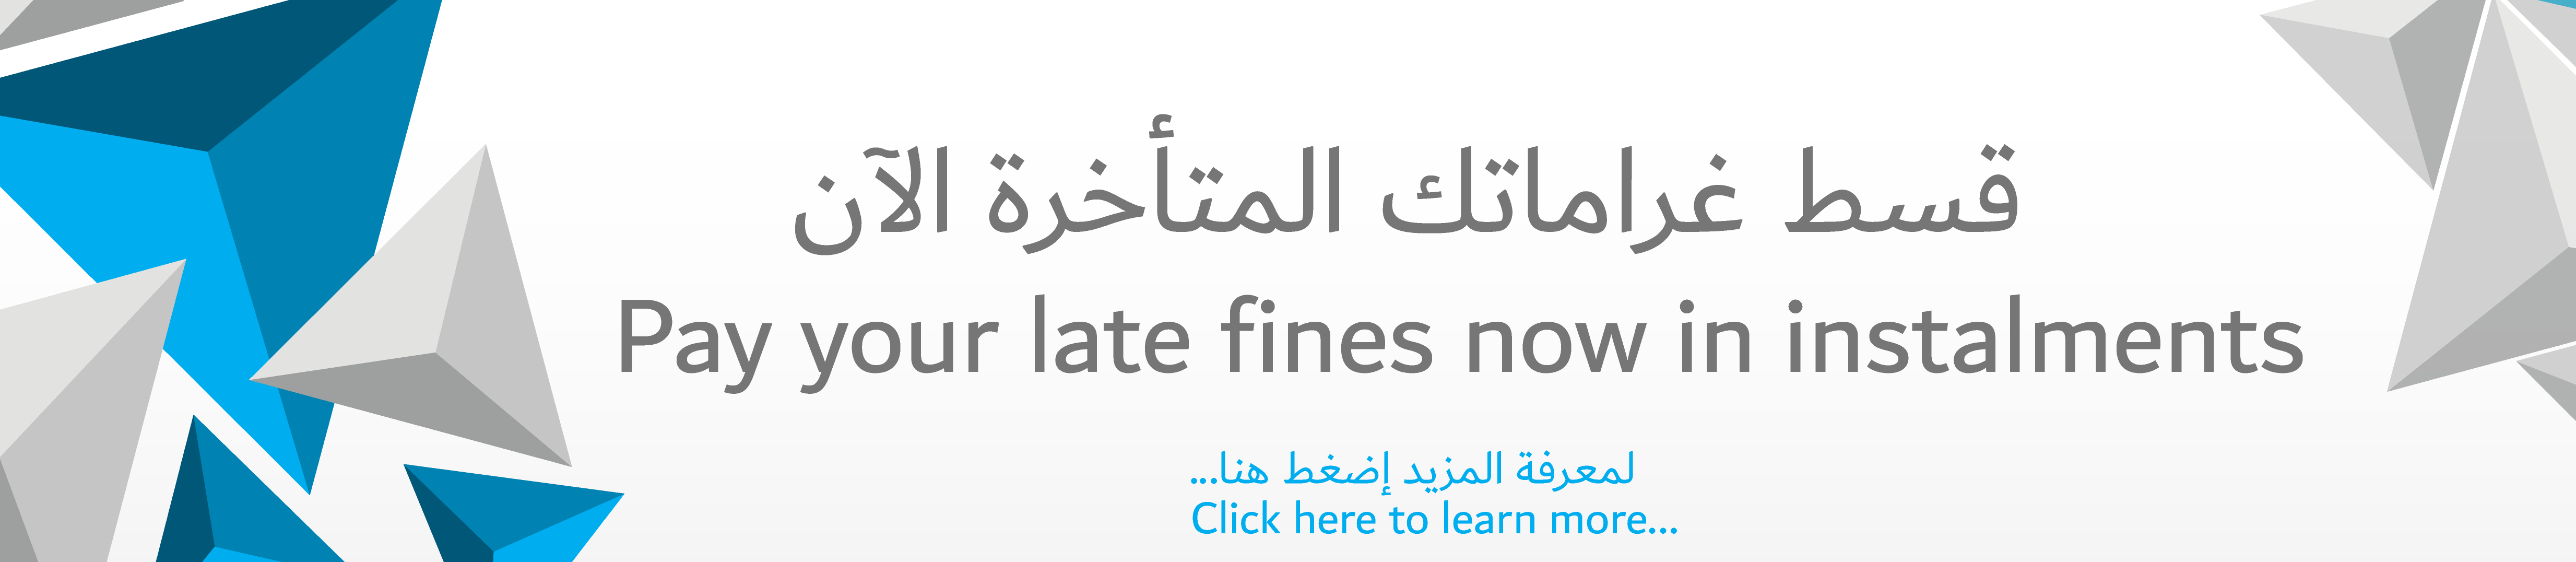 Pay your late fines